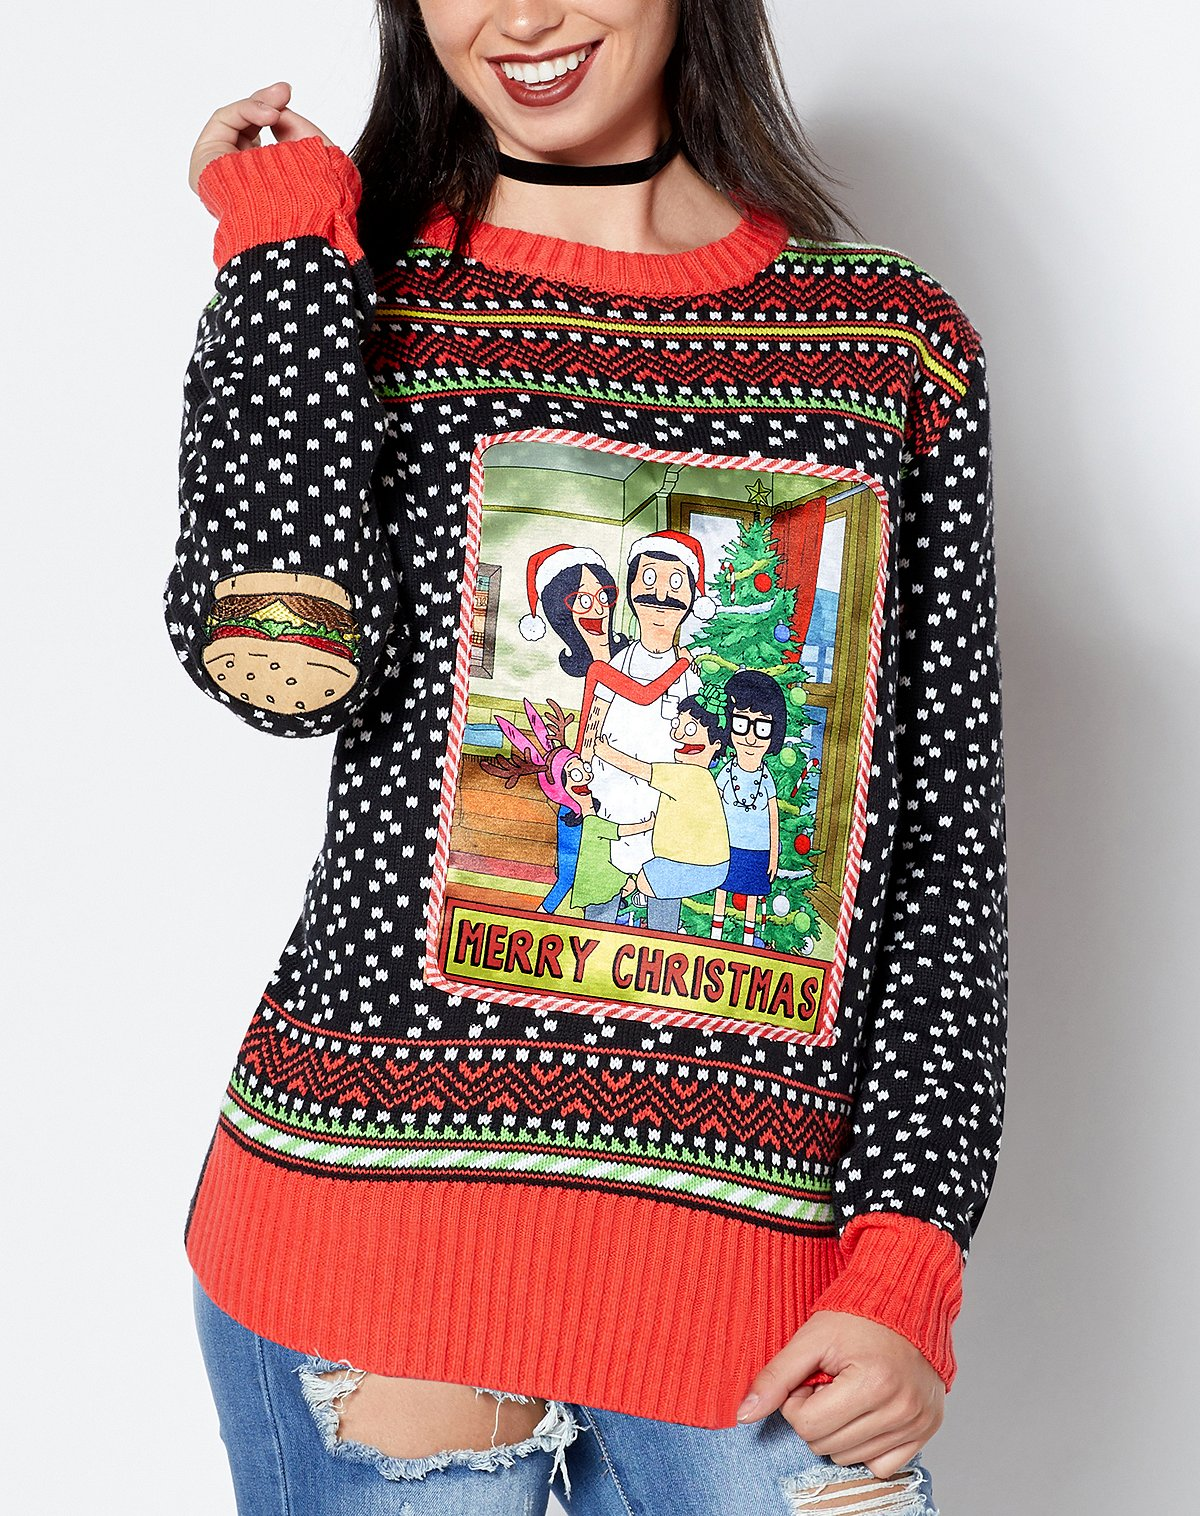 Spencers Ugly Christmas Sweaters.5 Places To Wear Your Ugly Christmas Sweater Spencers